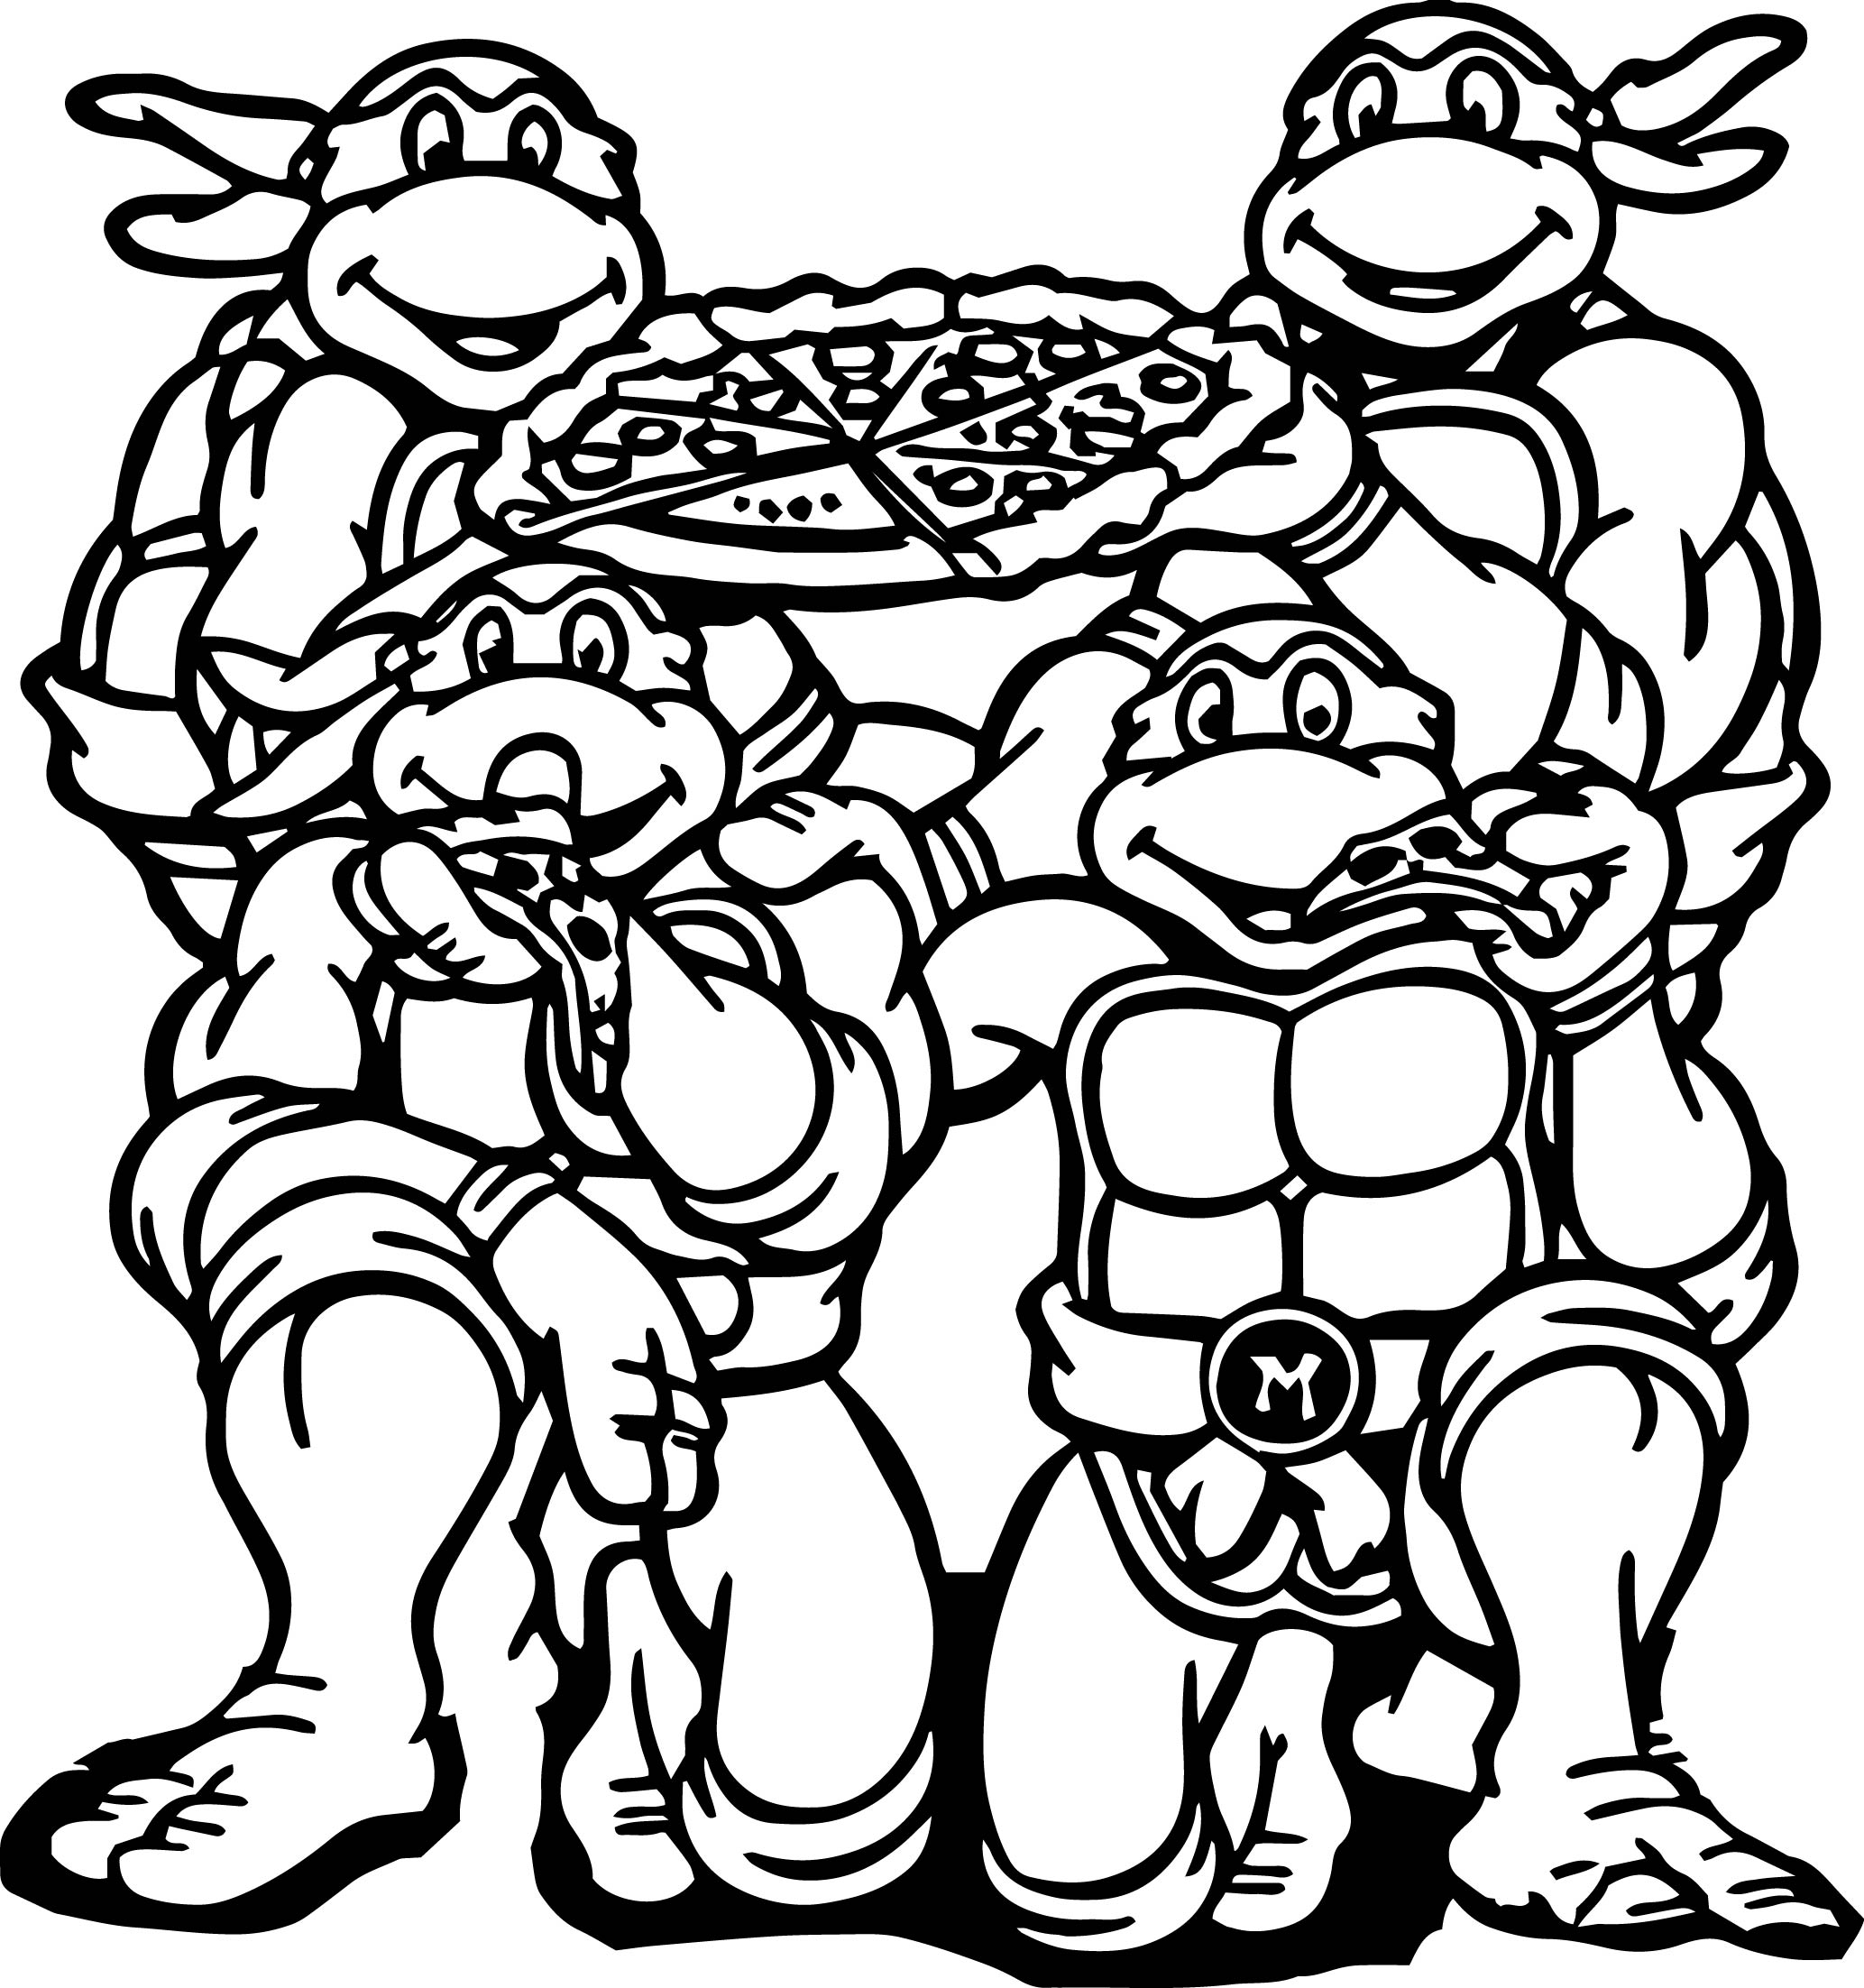 2067x2204 unique ninja turtles coloring sheets pages to beatiful draw paint